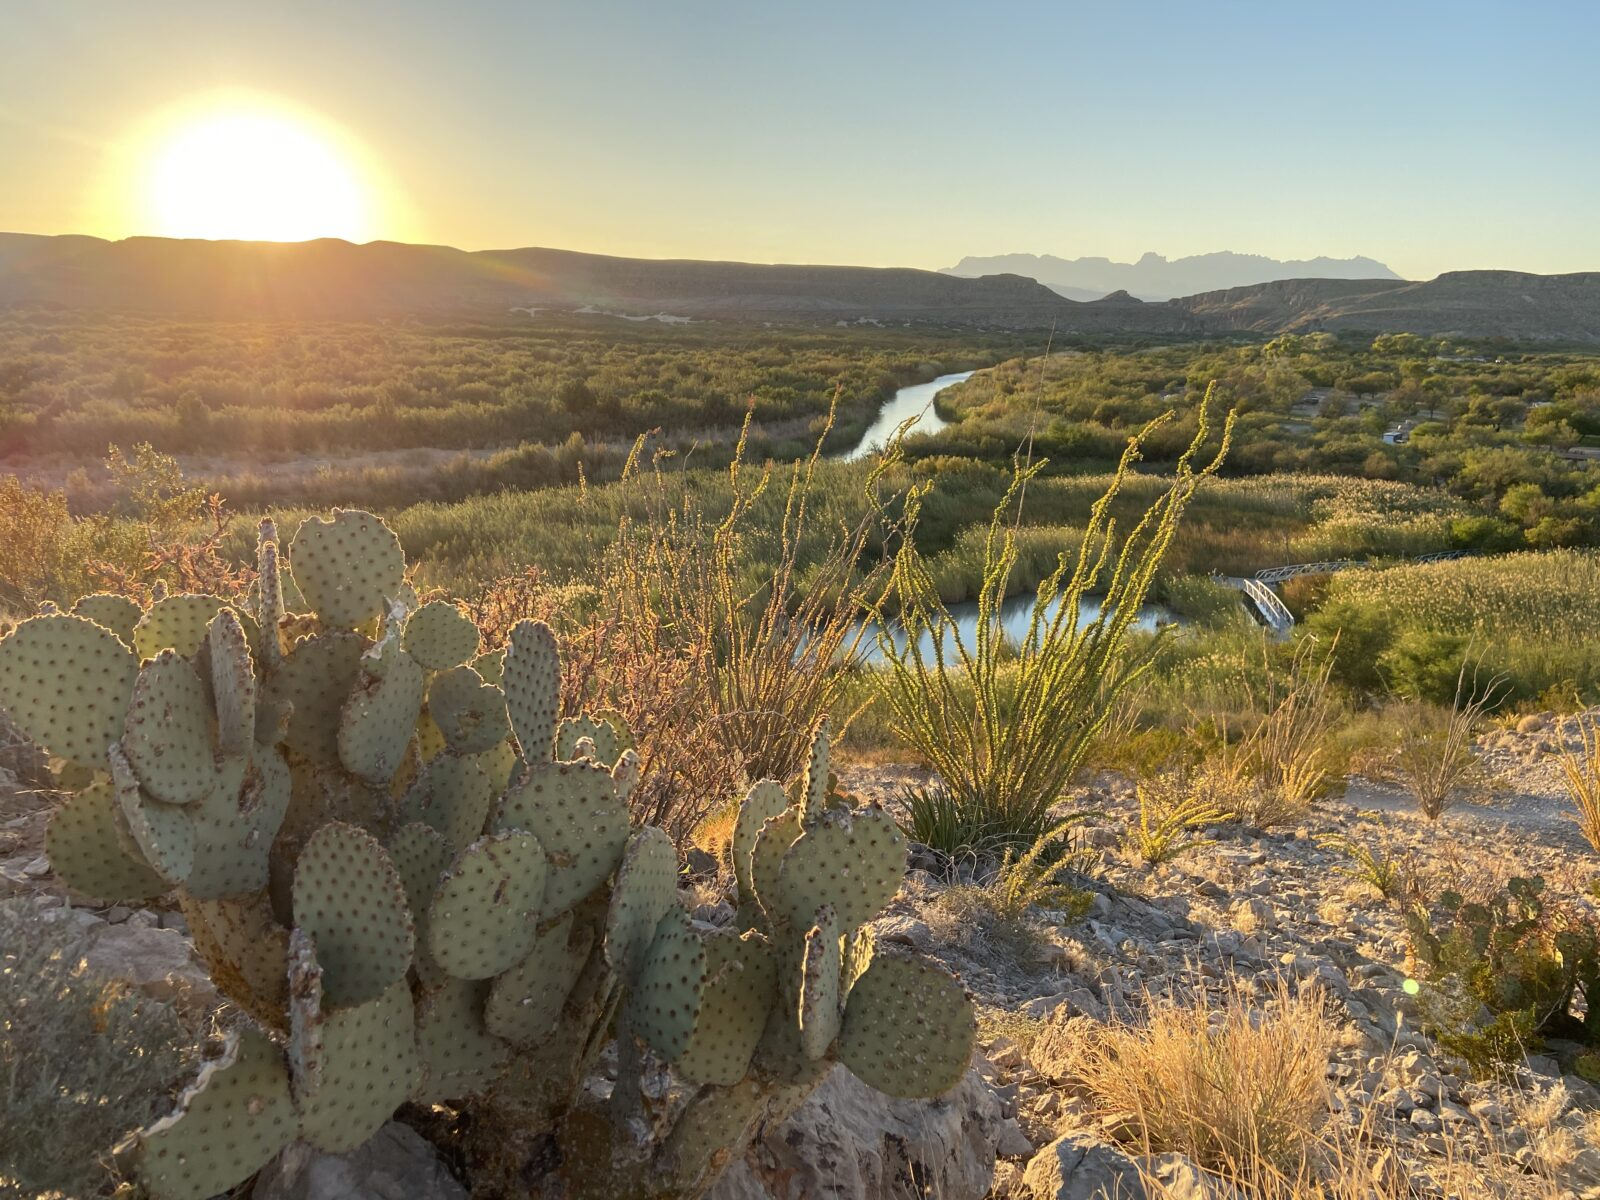 Mountains can be seen in the distance as sun sets on the trail, but you won't find WiFi in Big Bend in this area.